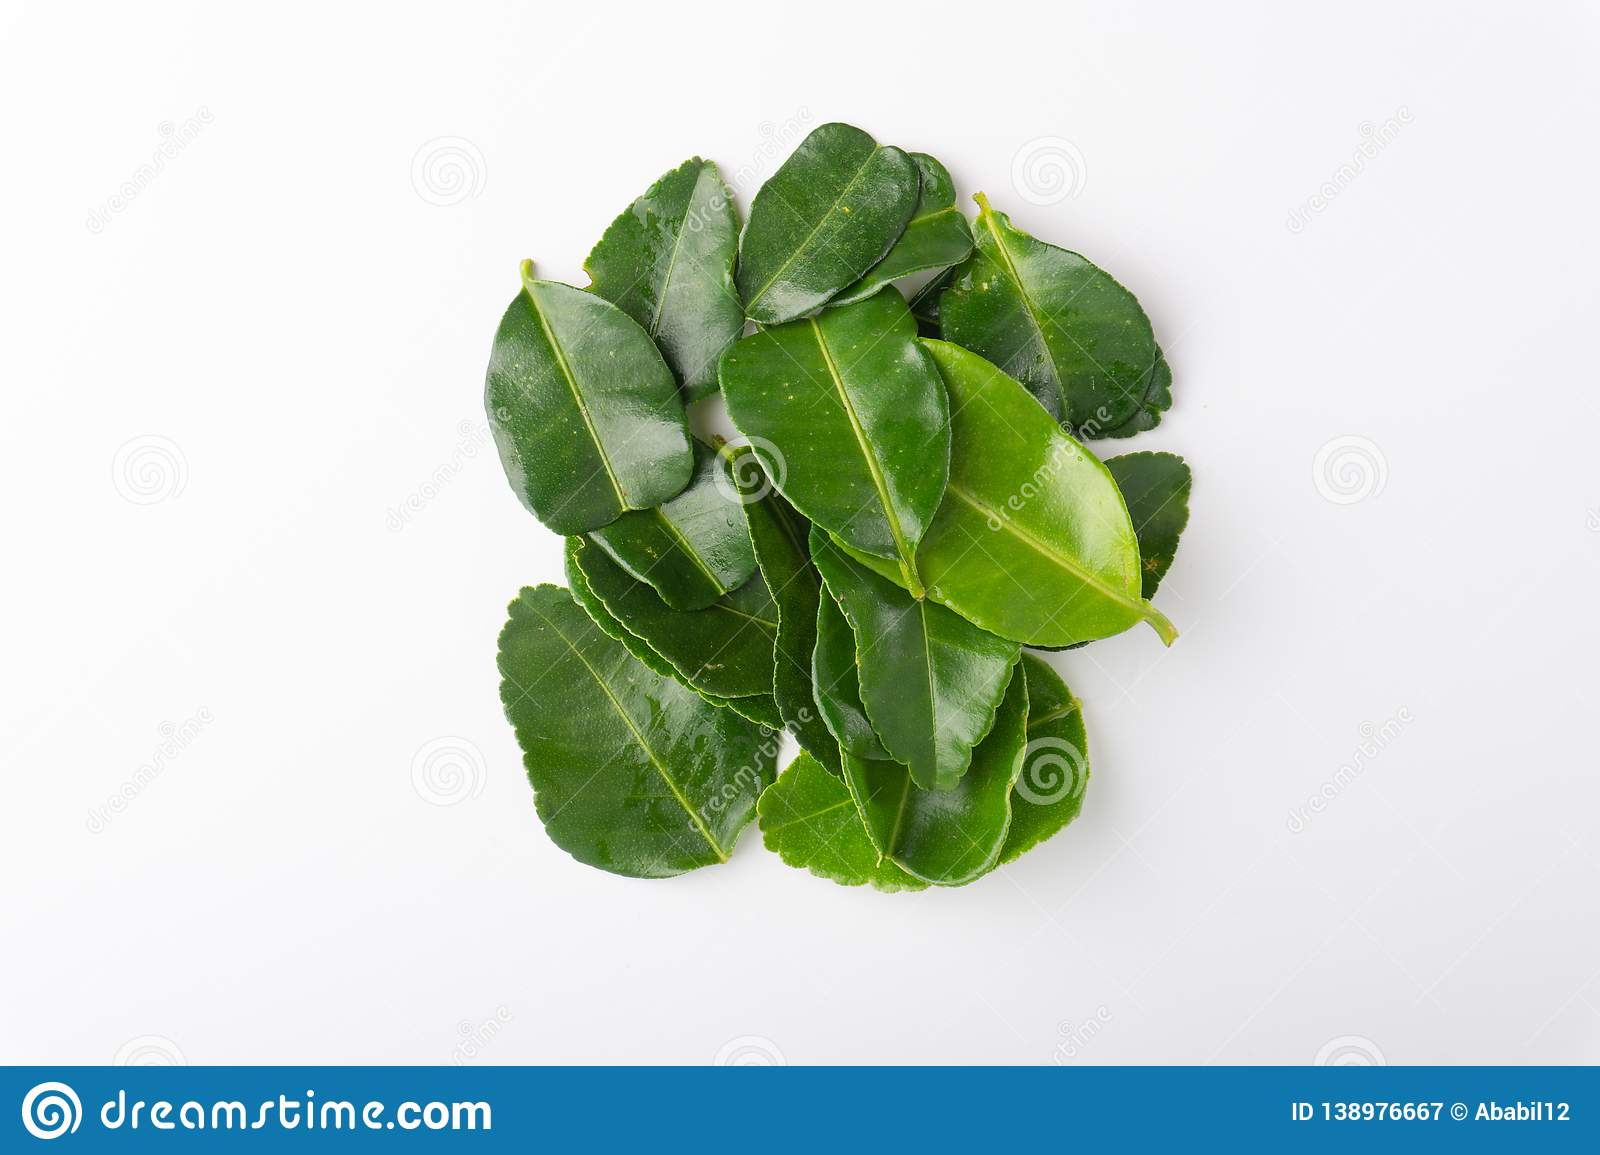 Kaffir lime leaf isolated on white background. Kaffir lime leaf Daun limau purut isolated on white background royalty free stock photography